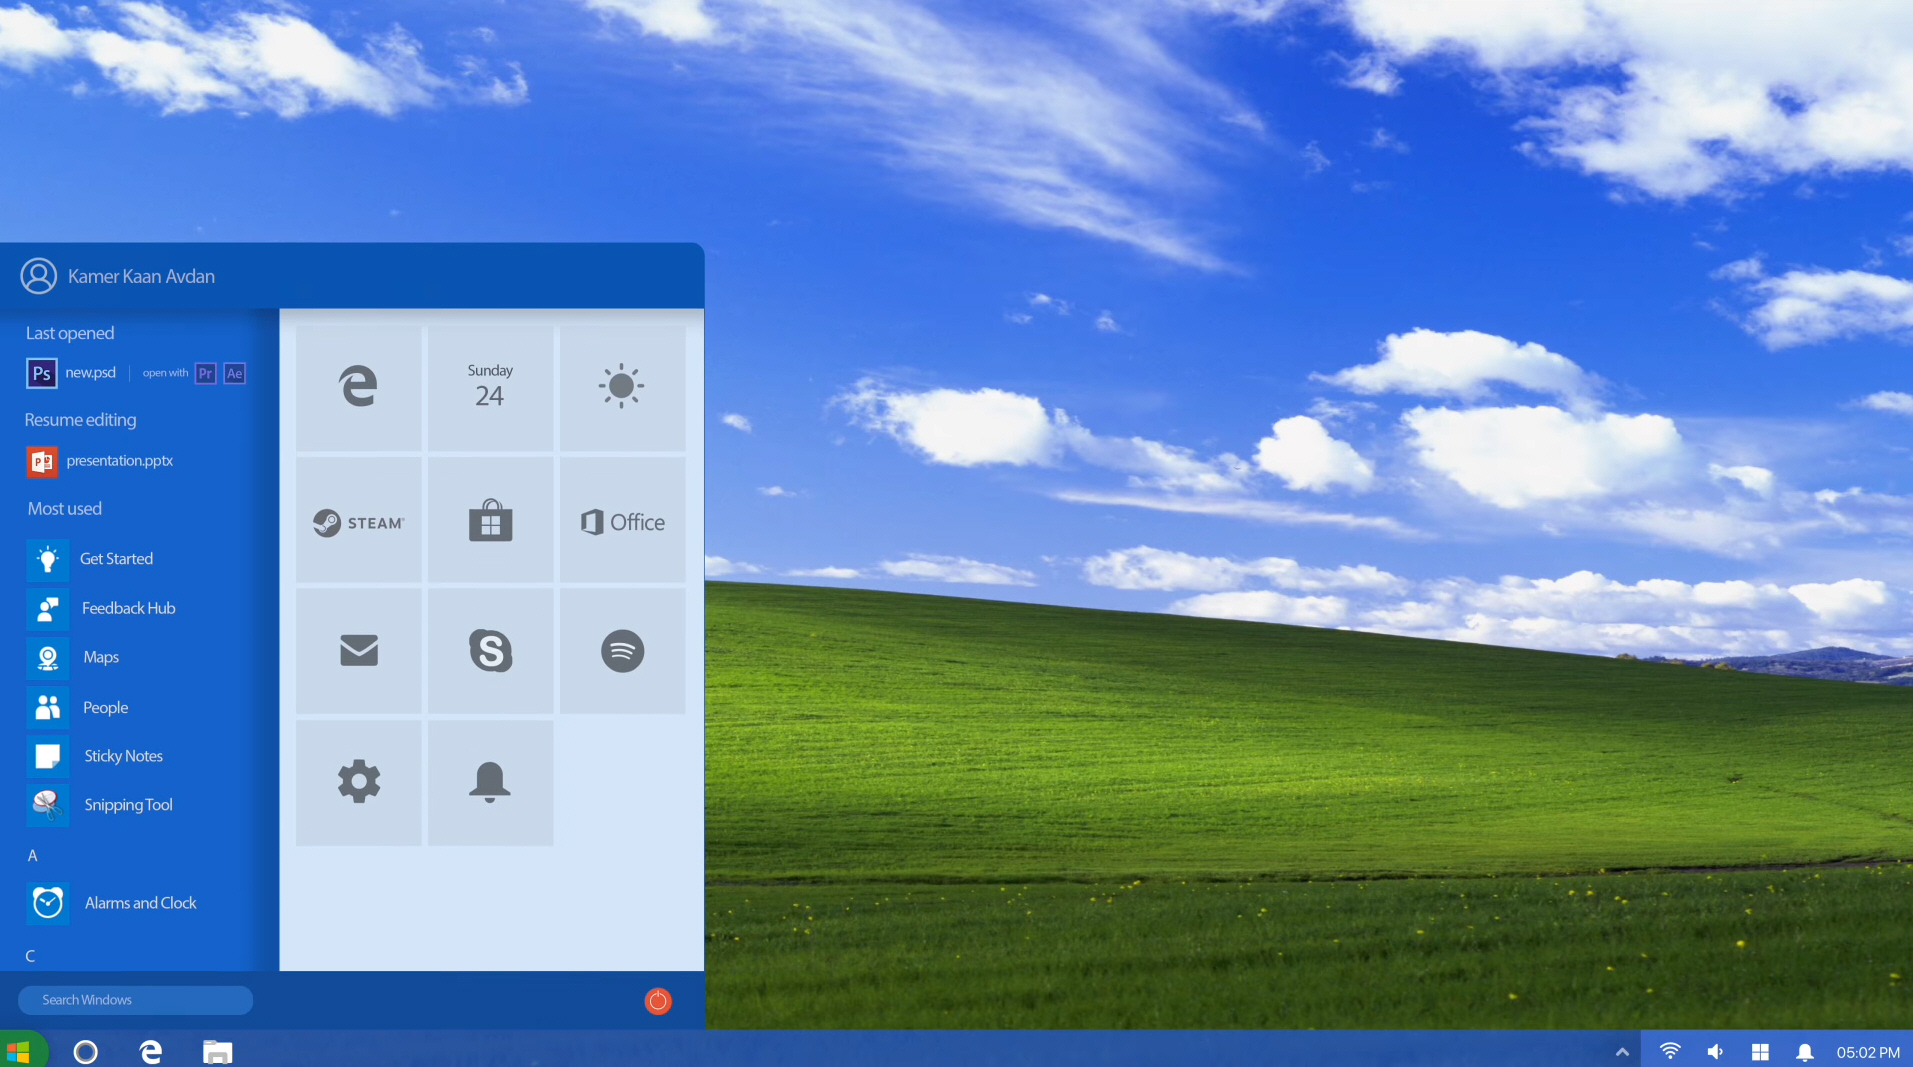 Windows XP 2018 Edition is the operating system Microsoft should be